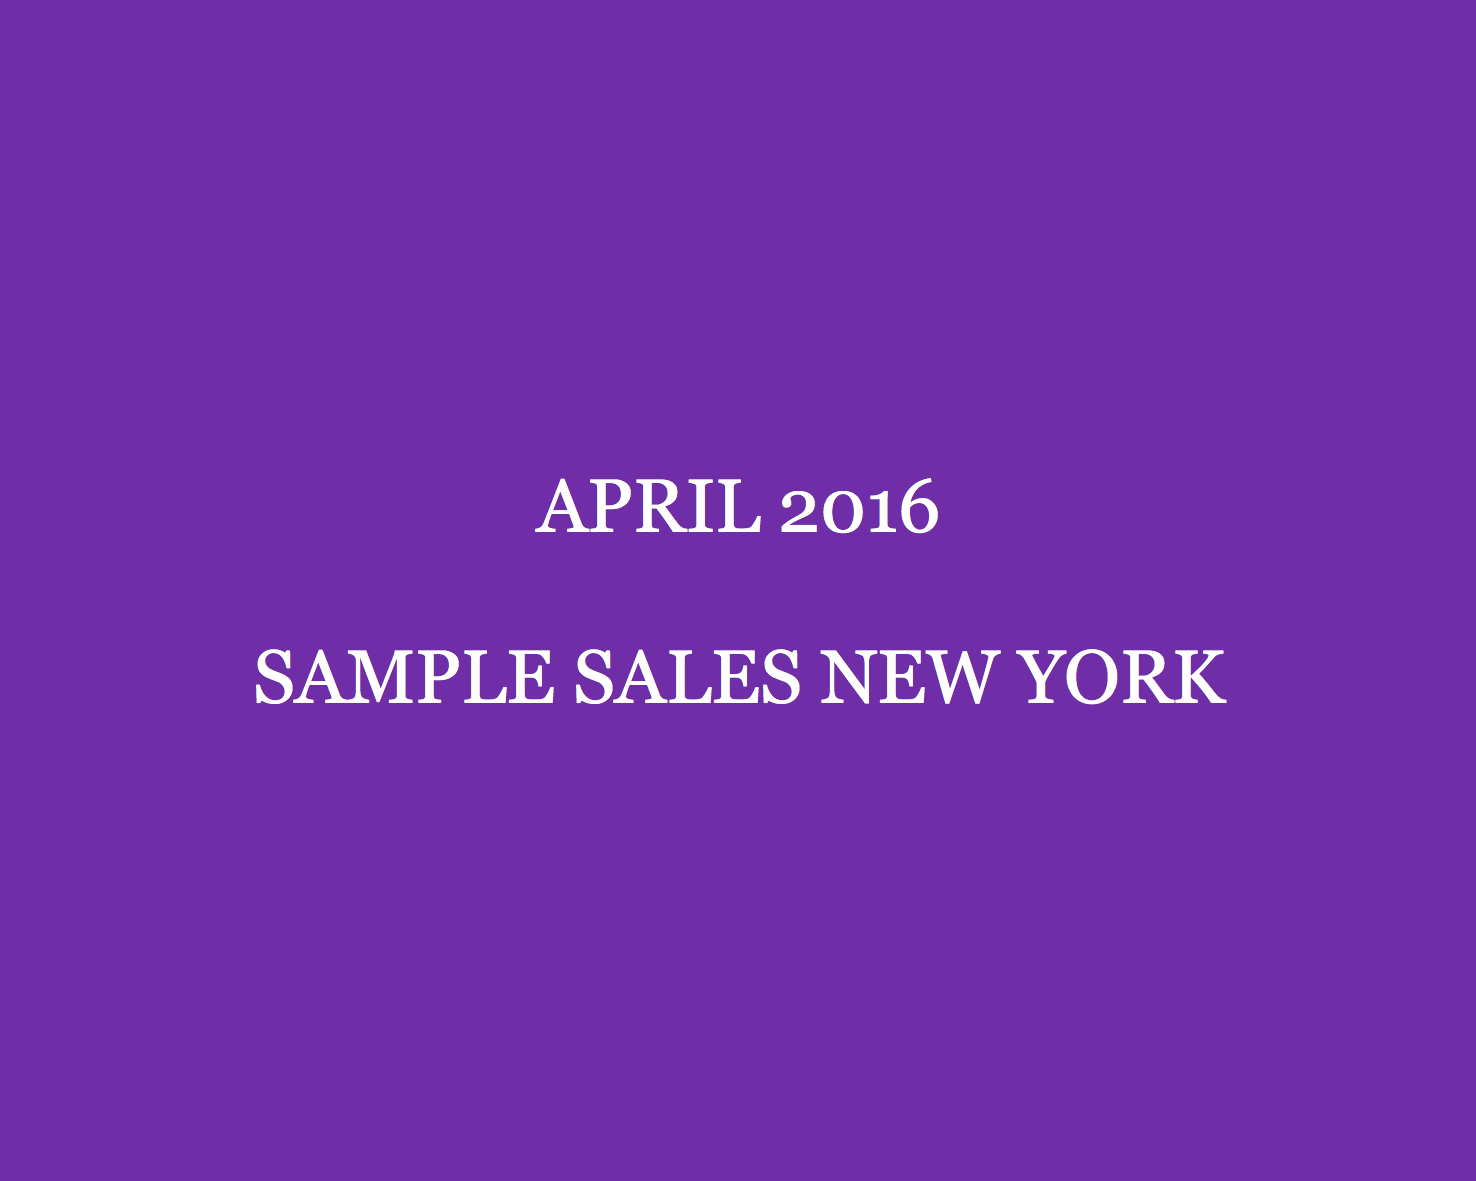 April Sample Sales New York Style Barista New York Sample Sales 2016 New York sample sale New York